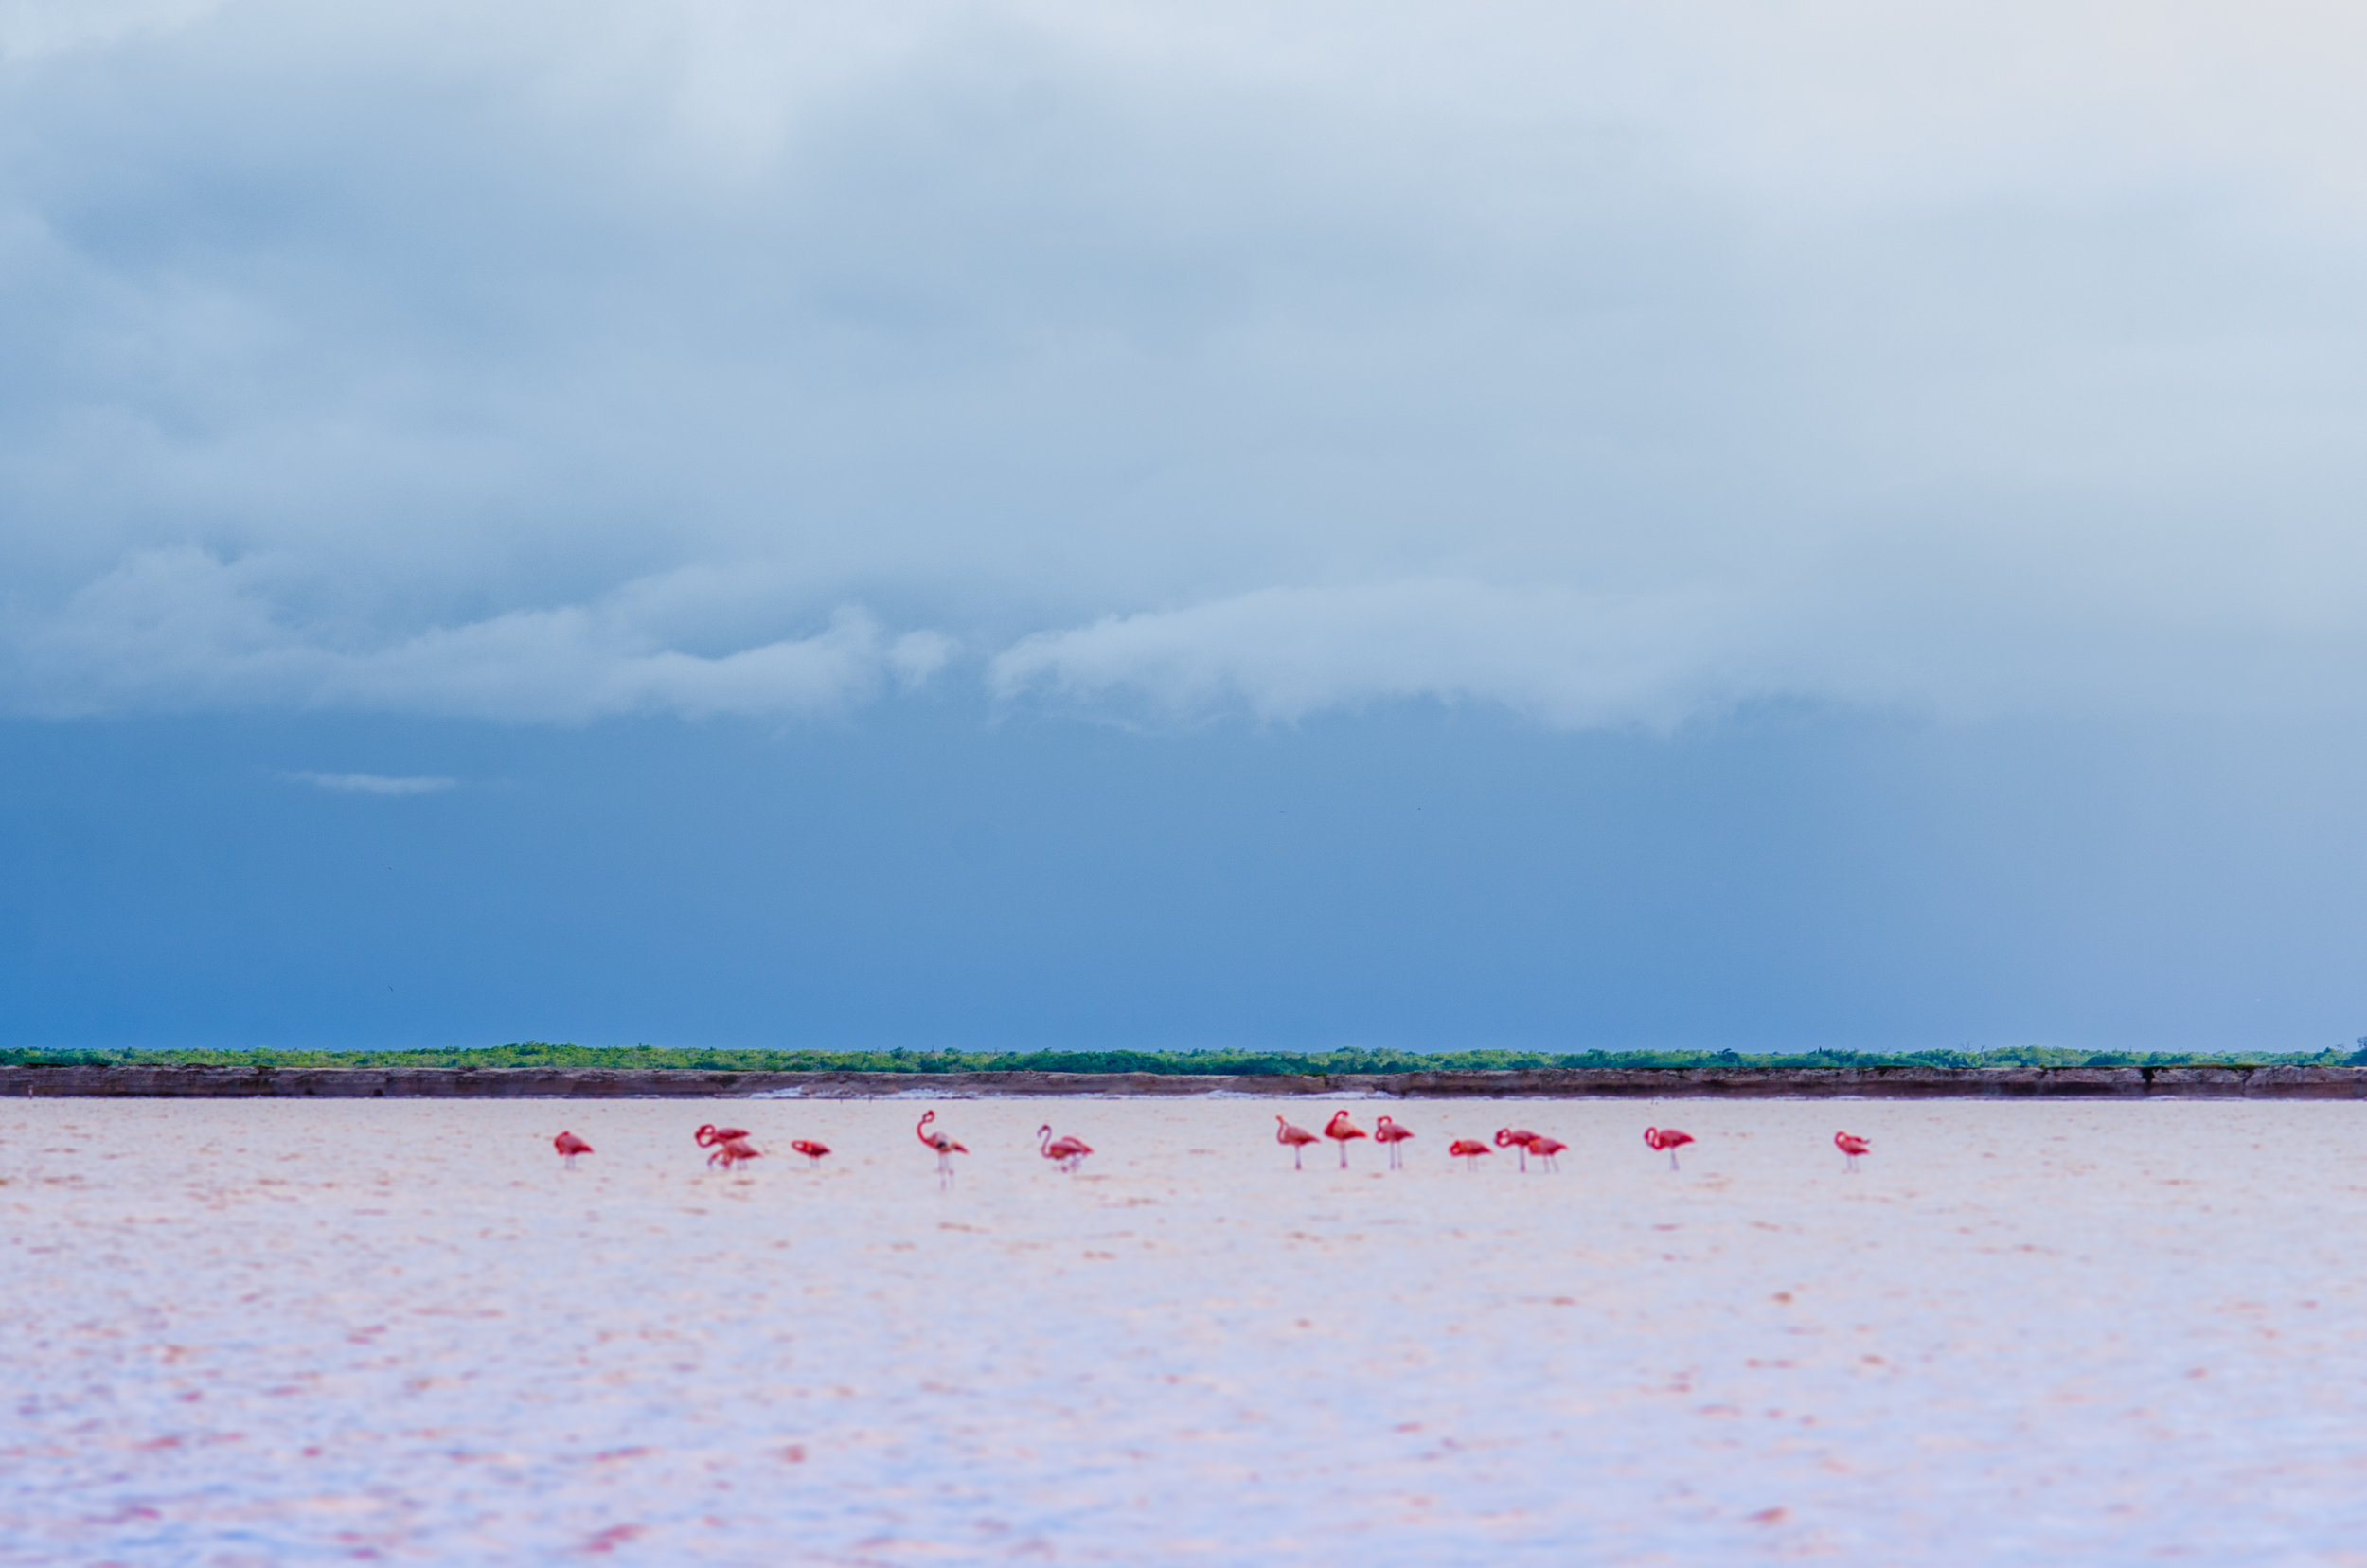 pink flamingos & pink lake